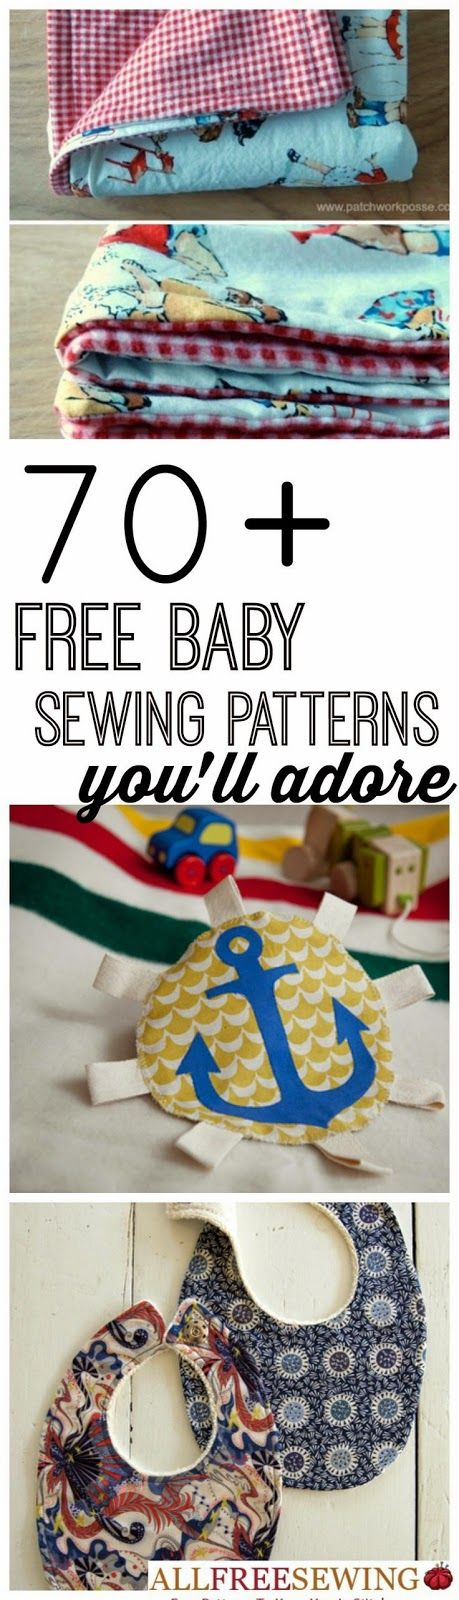 Craft Project Ideas: 75 Free Baby Sewing Patterns You'll Adore   New Baby Sewing Patterns